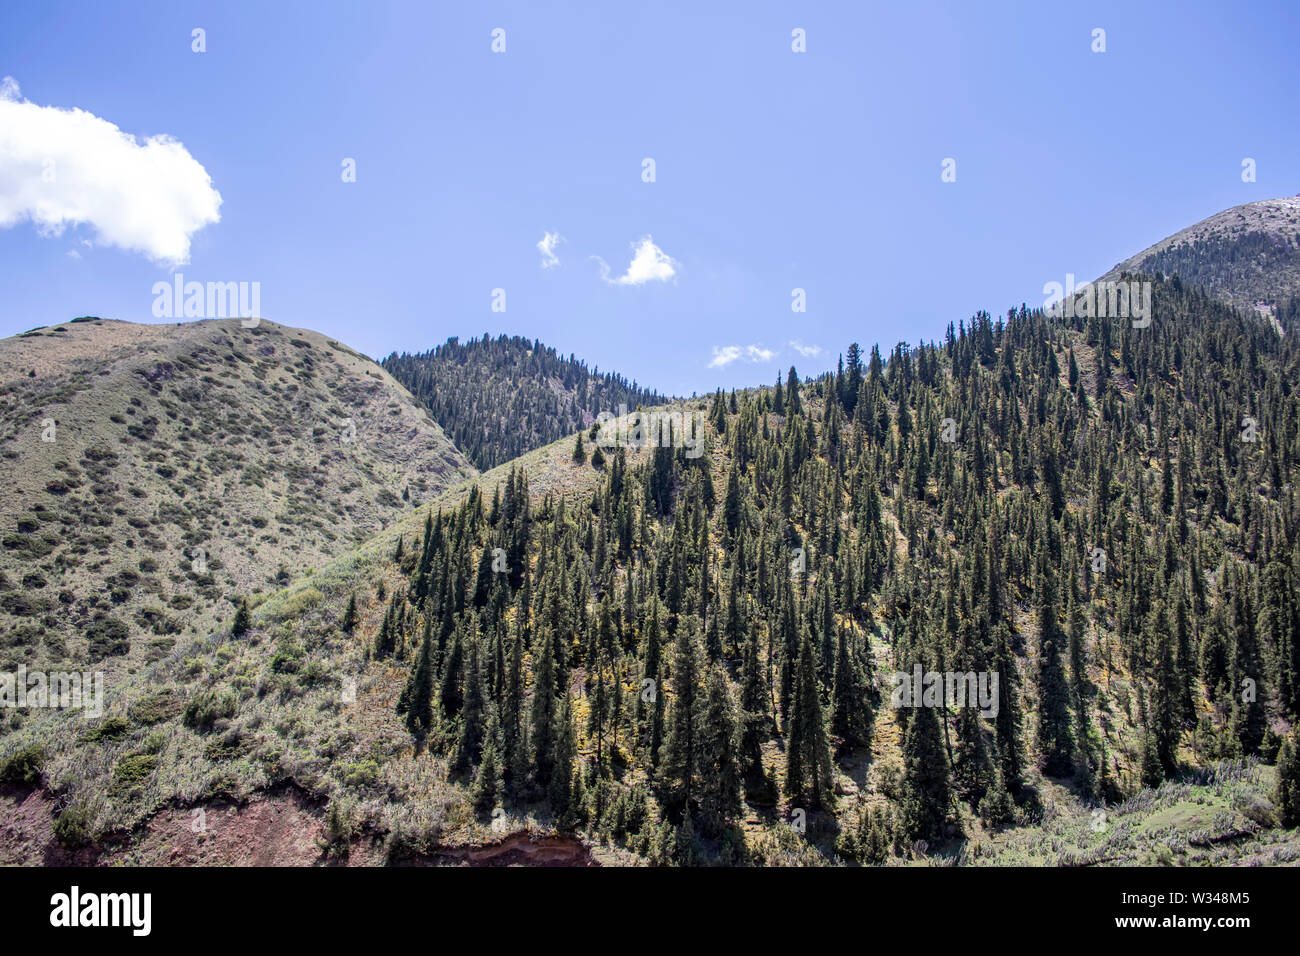 Mountains overgrown with spruce forest. snowy peaks and green pastures. Kyrgyzstan Travel. - Stock Image